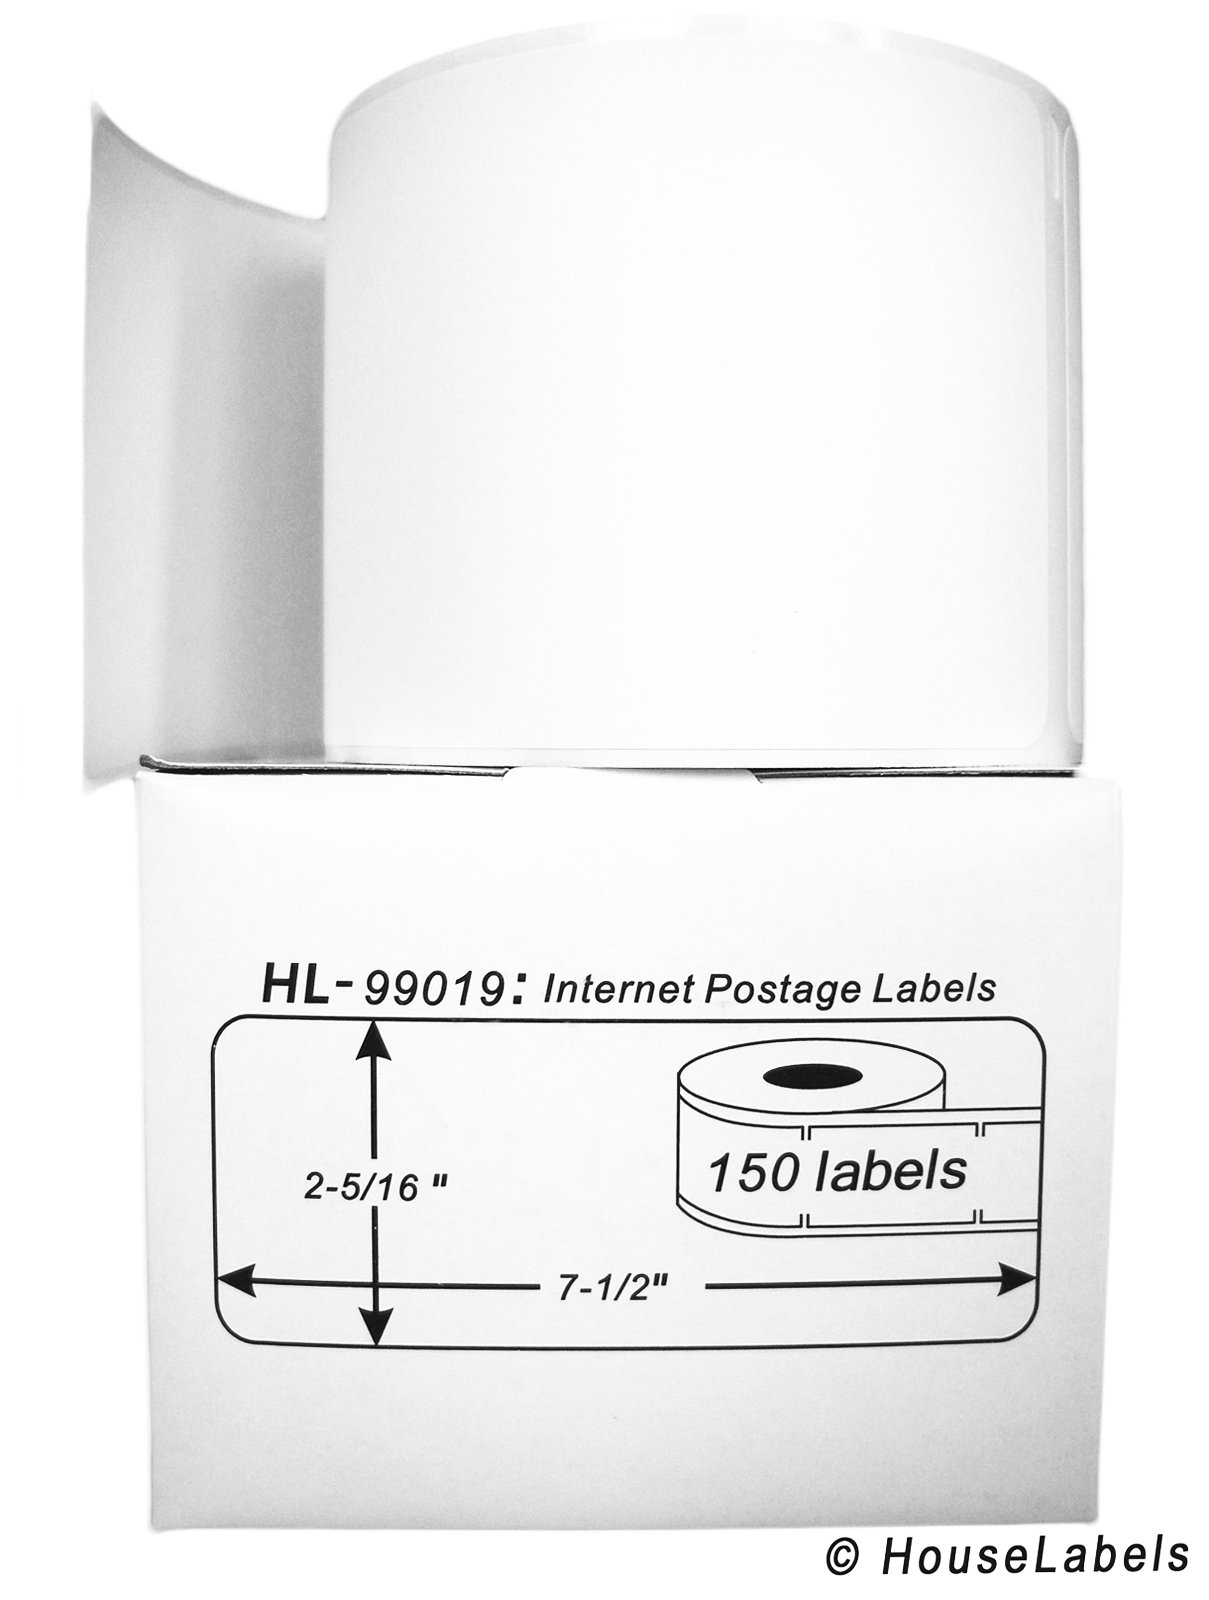 DYMO-Compatible 99019 1-Part Internet Postage Labels (2-5/16'' x 7-1/2'') - BPA Free! (6 Rolls; 150 Labels per Roll) by HouseLabels